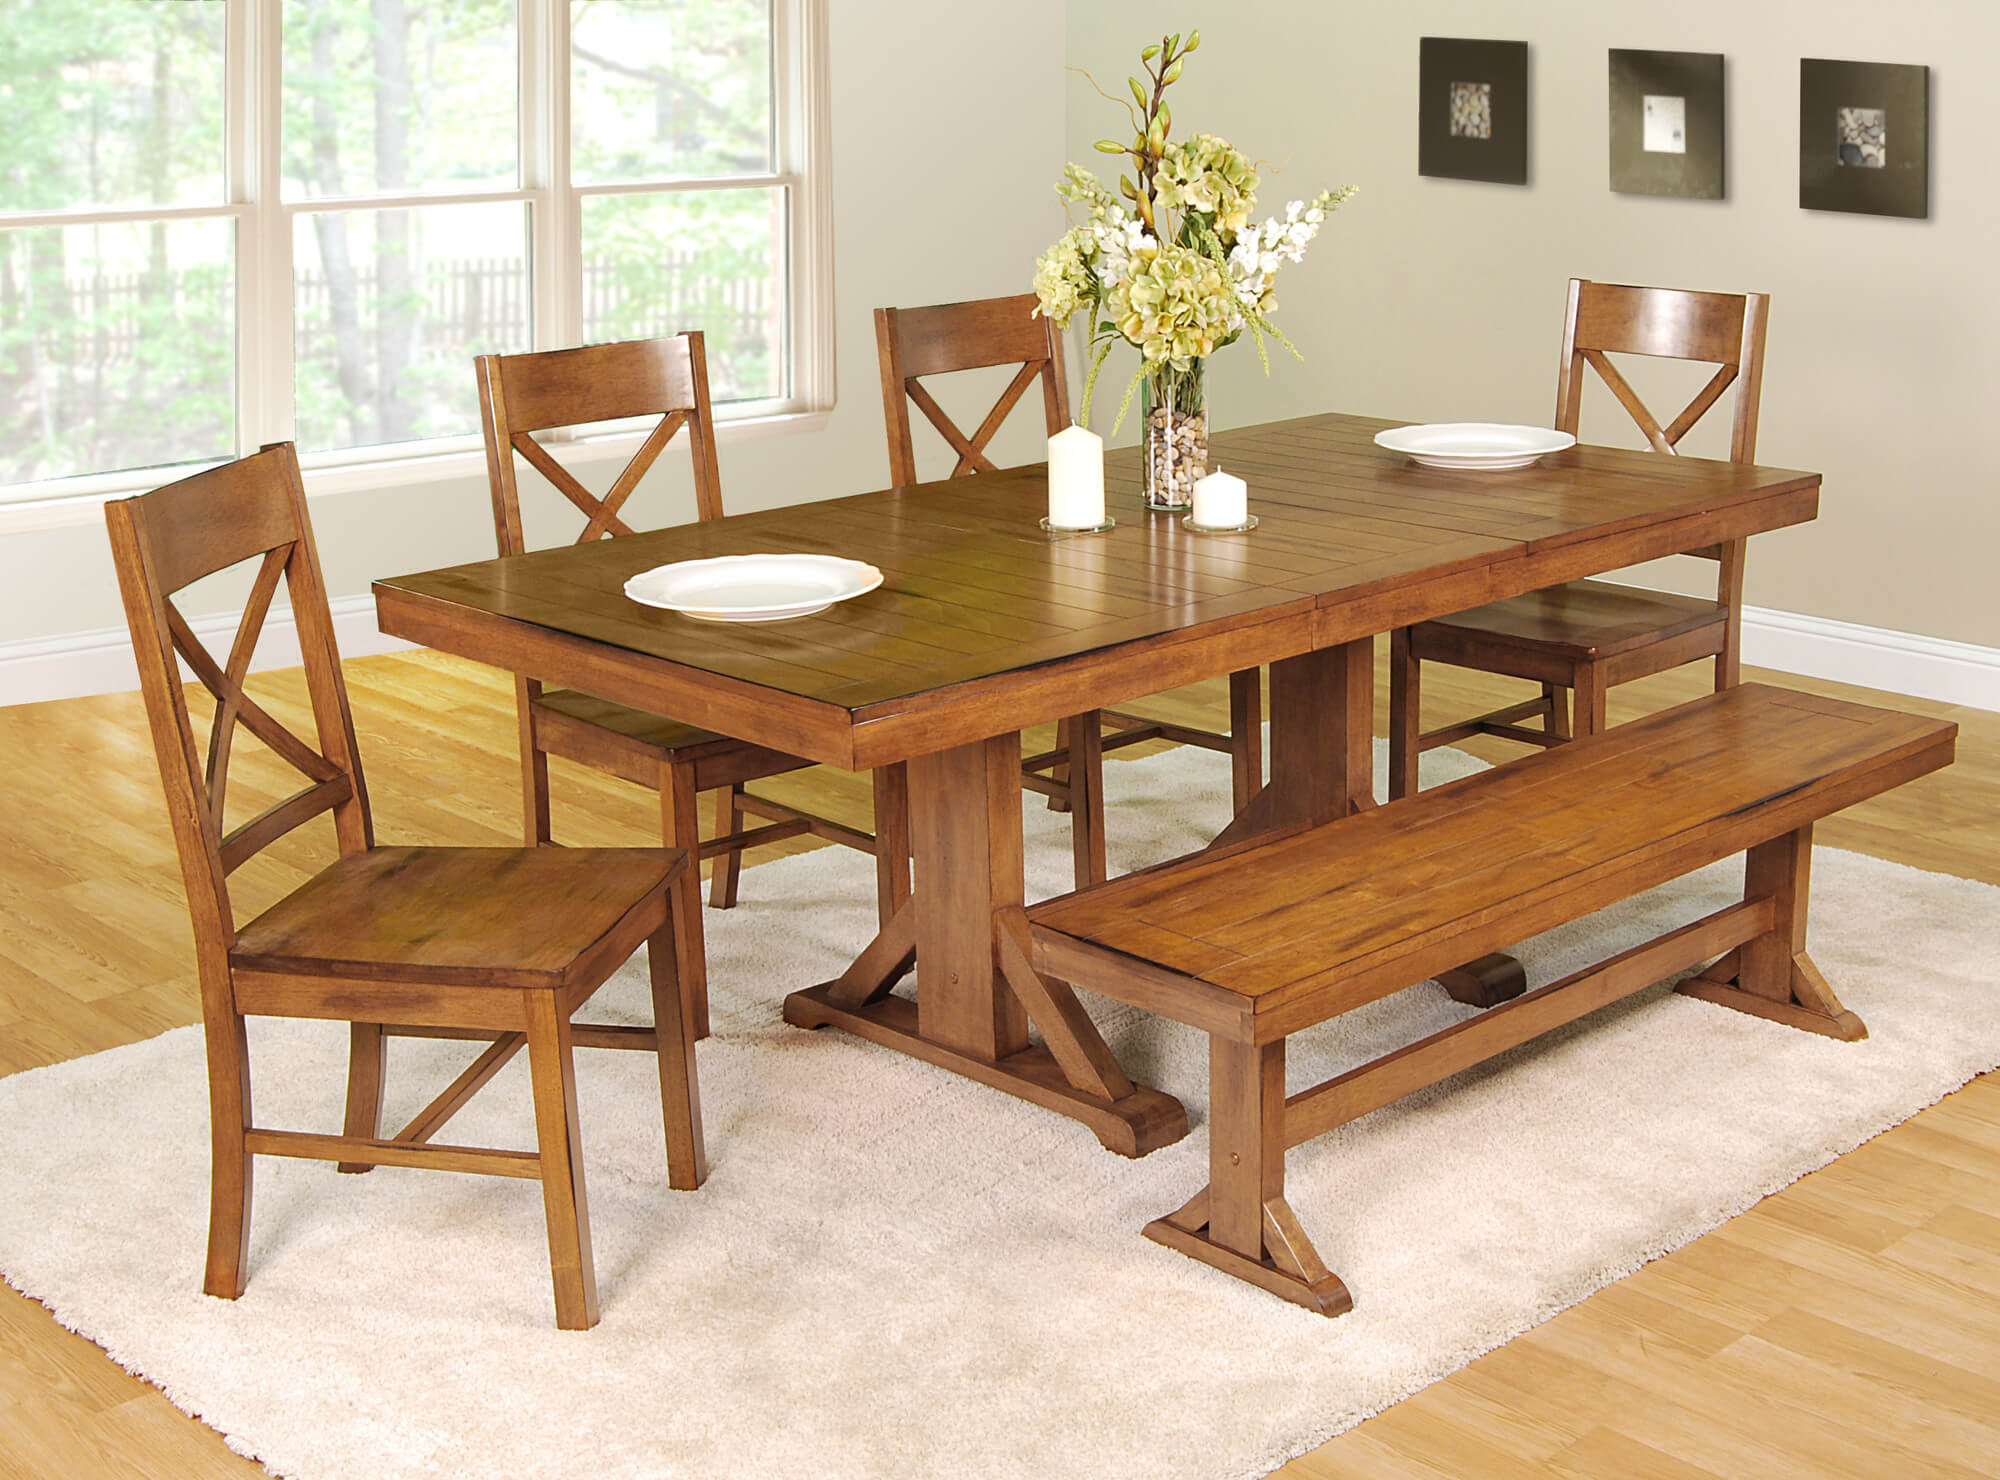 for creating a country style dining room or inkitchen dining area